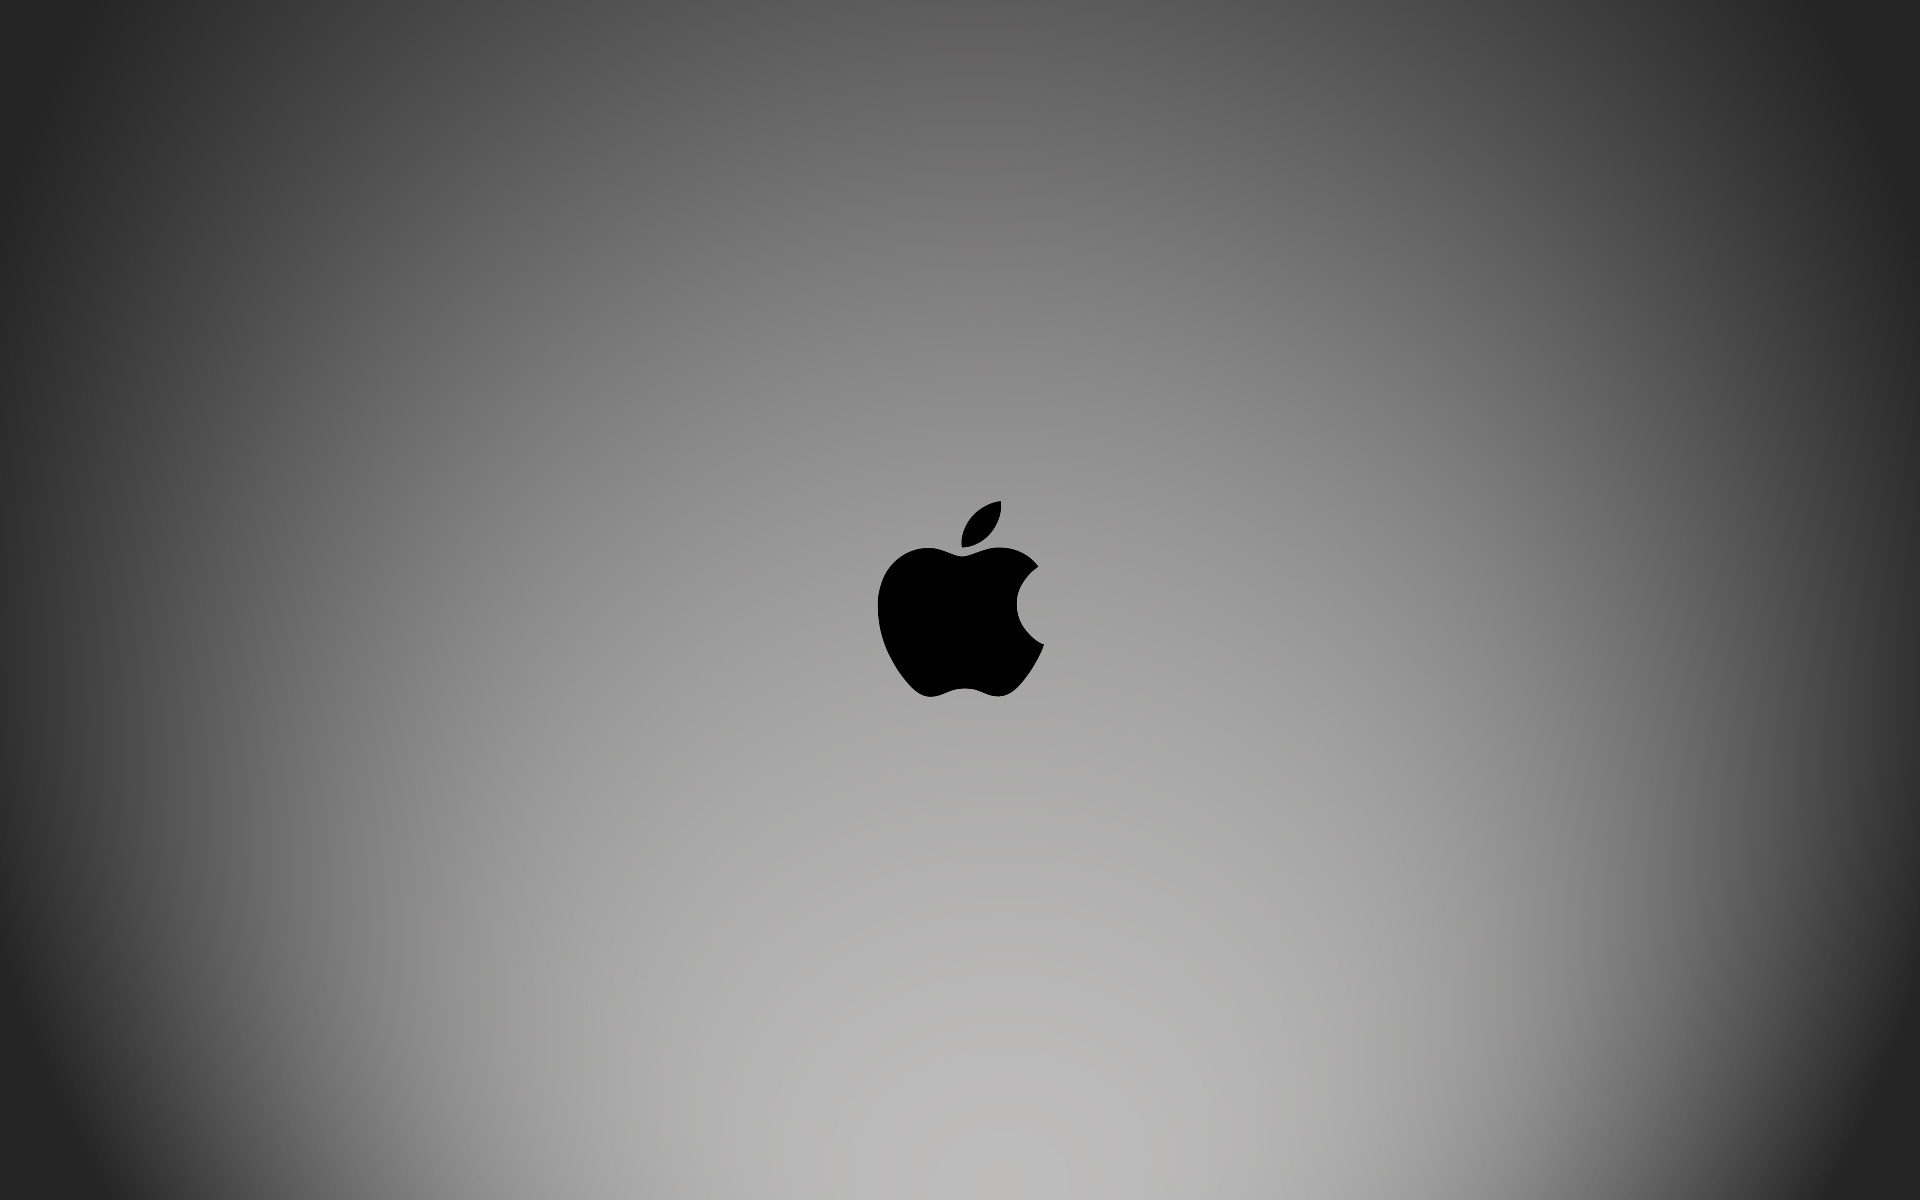 Wallpaper apple black white HD Desktop Wallpapers 1920x1200